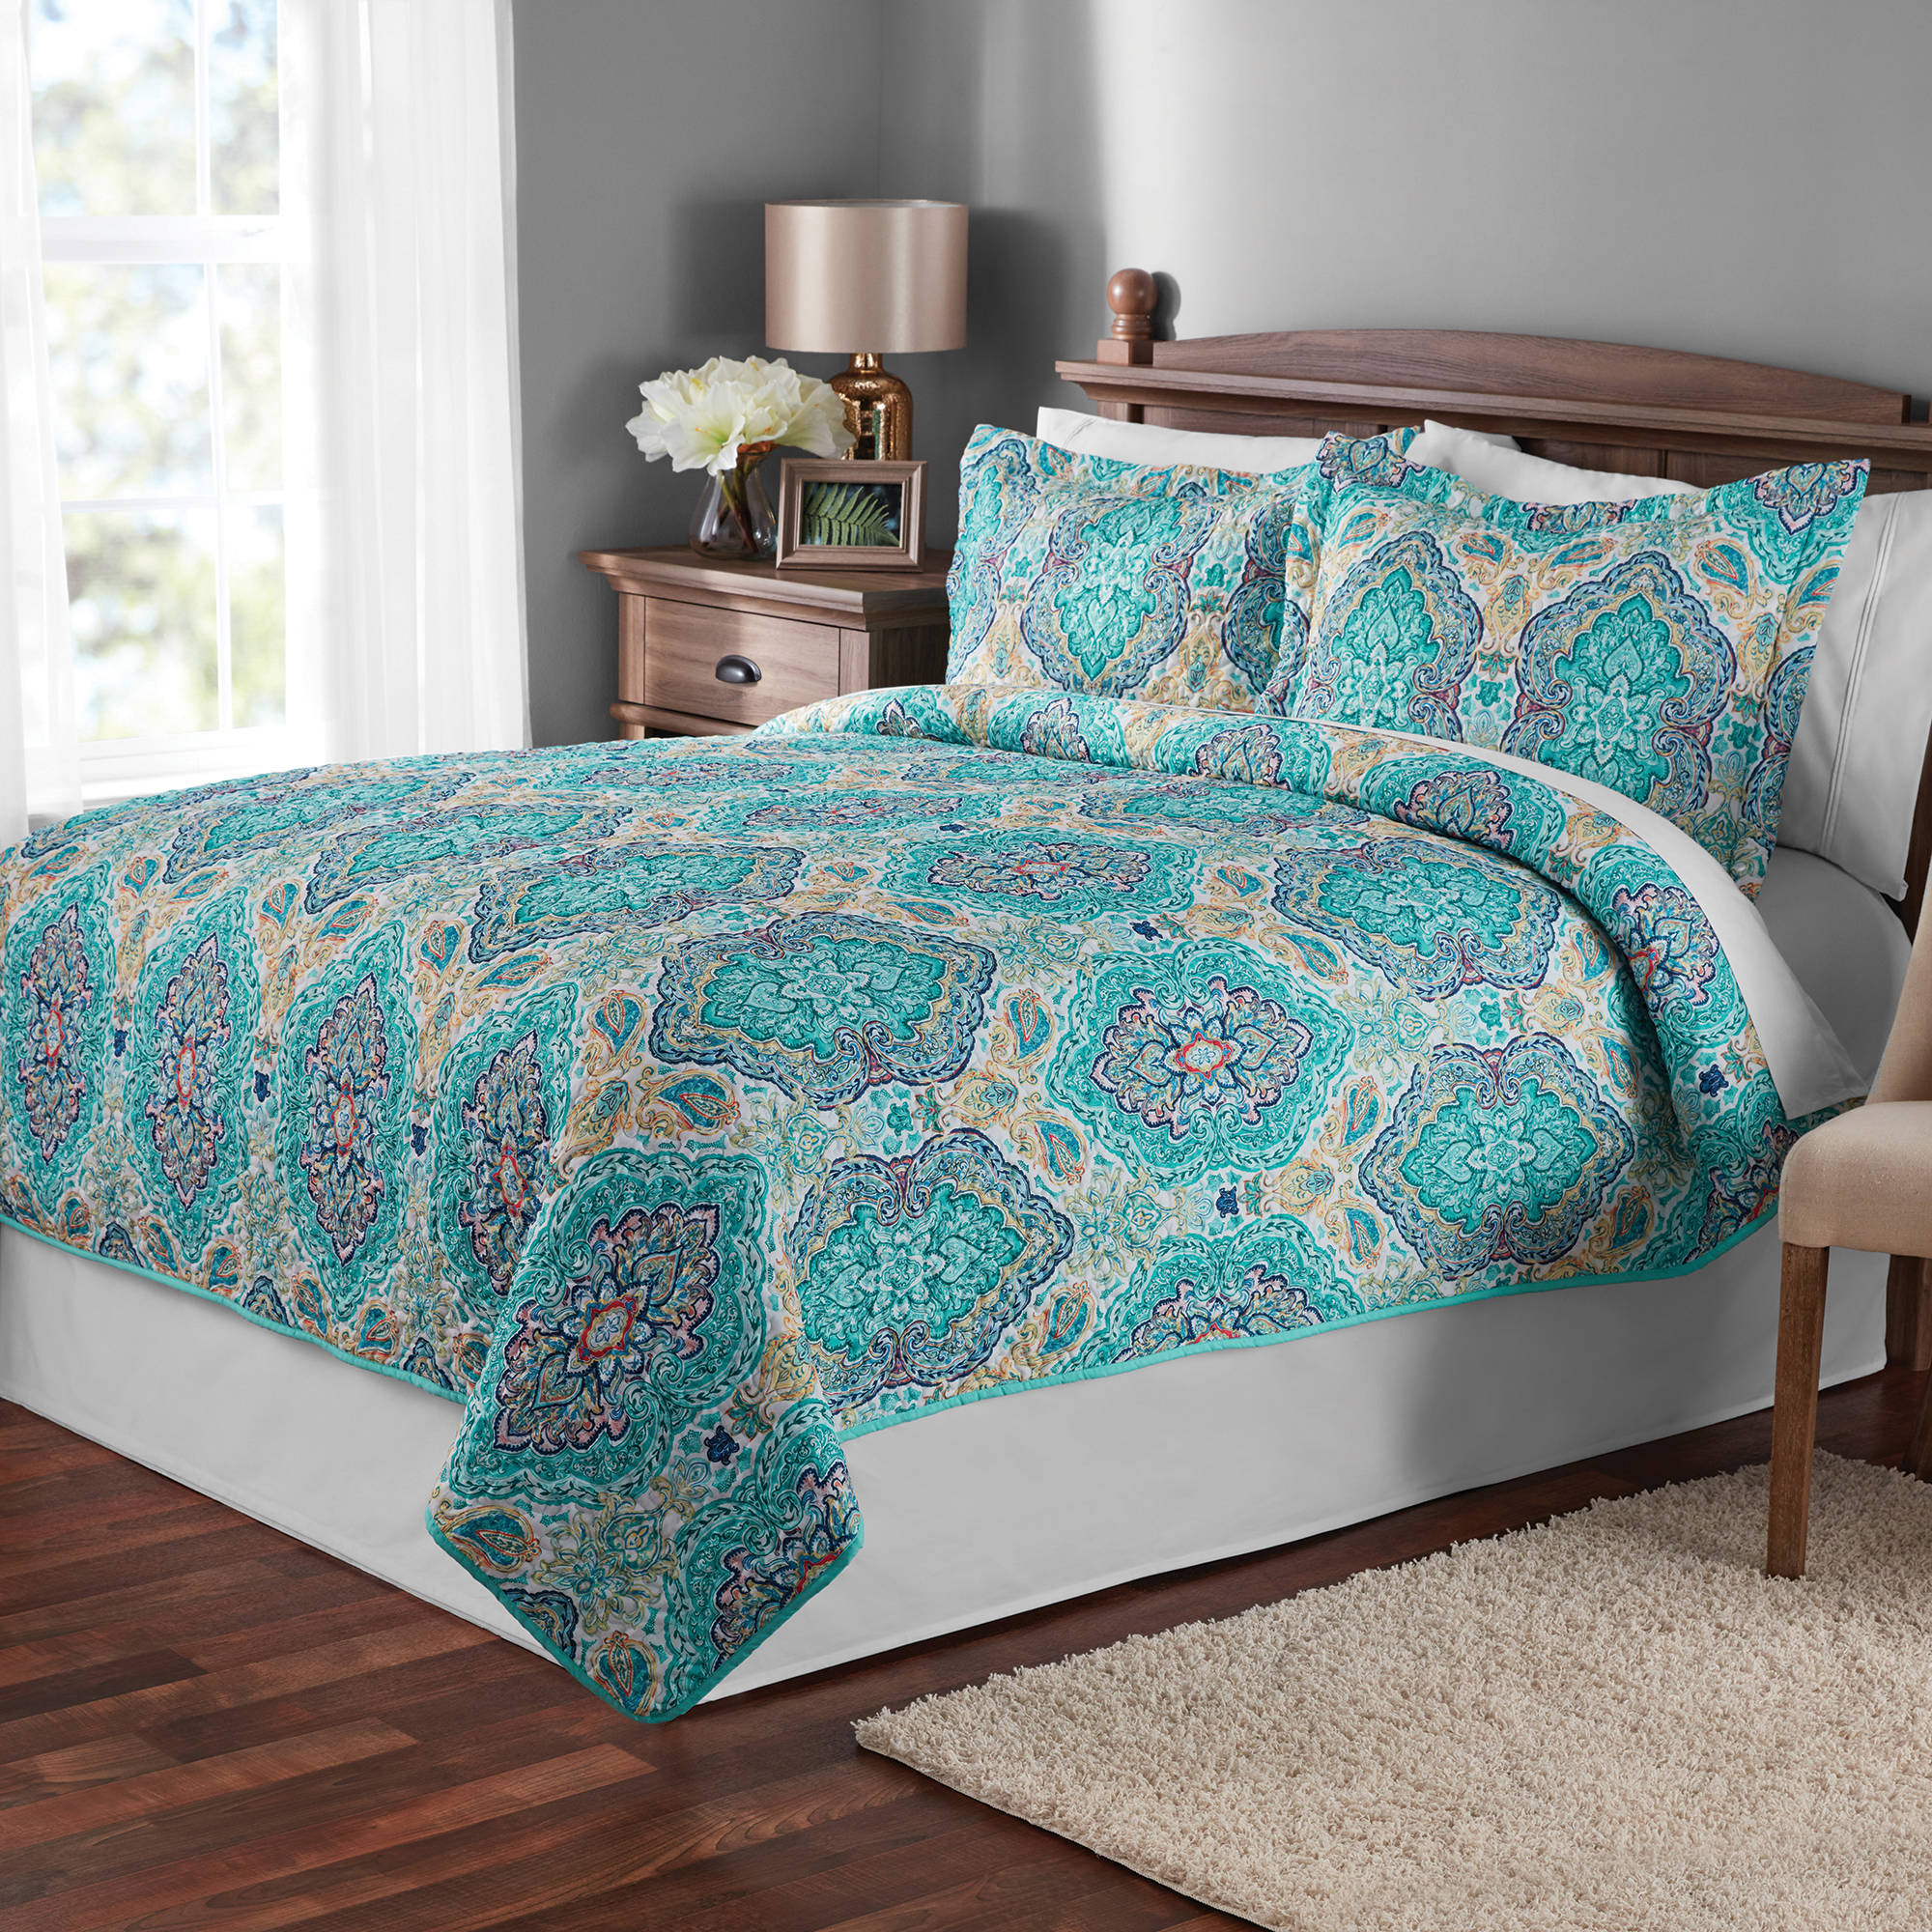 Lilly Pulitzer Bedroom Ideas Dillards Bedroom Sets Waterford Quot Anya Quot Bedding Collection